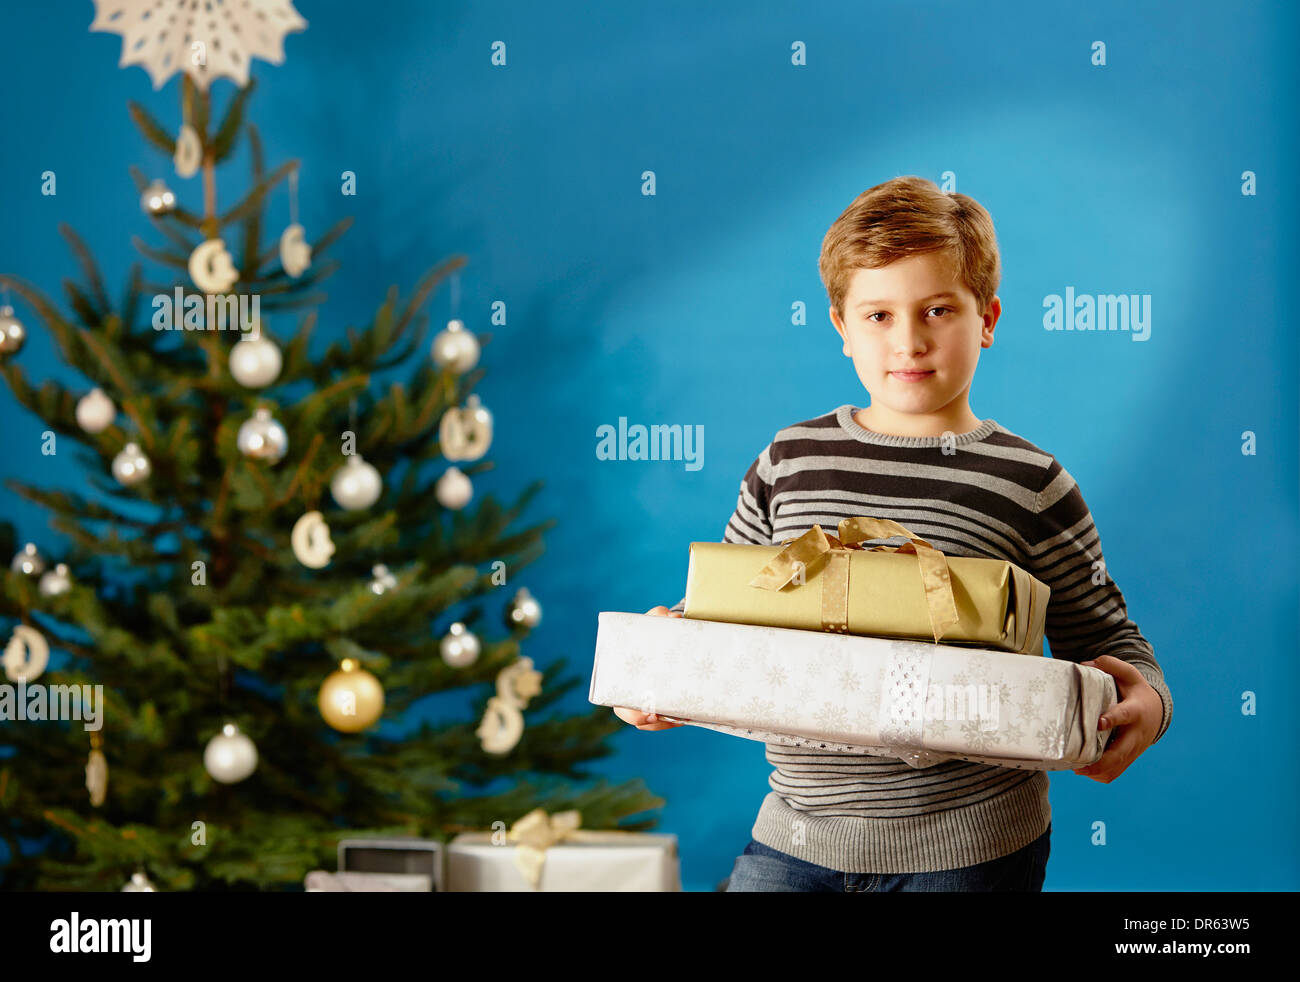 Little boy holding Christmas presents, Munich, Bavaria, Germany - Stock Image